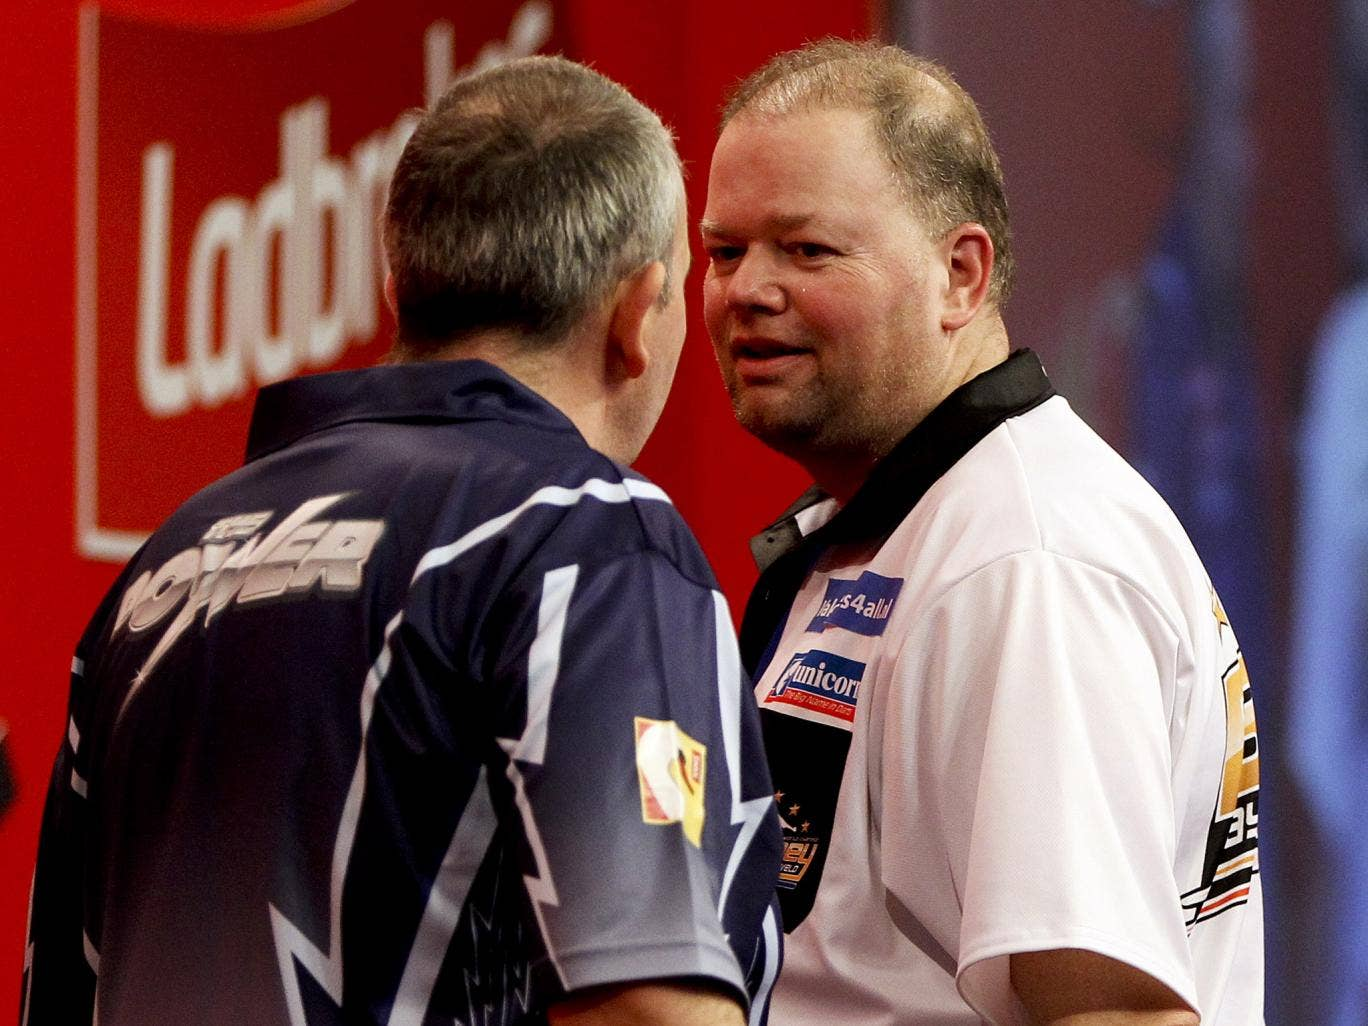 Raymond van Barneveld (right) and Phil Taylor clash during their semi final match on day fourteen World Darts Championship